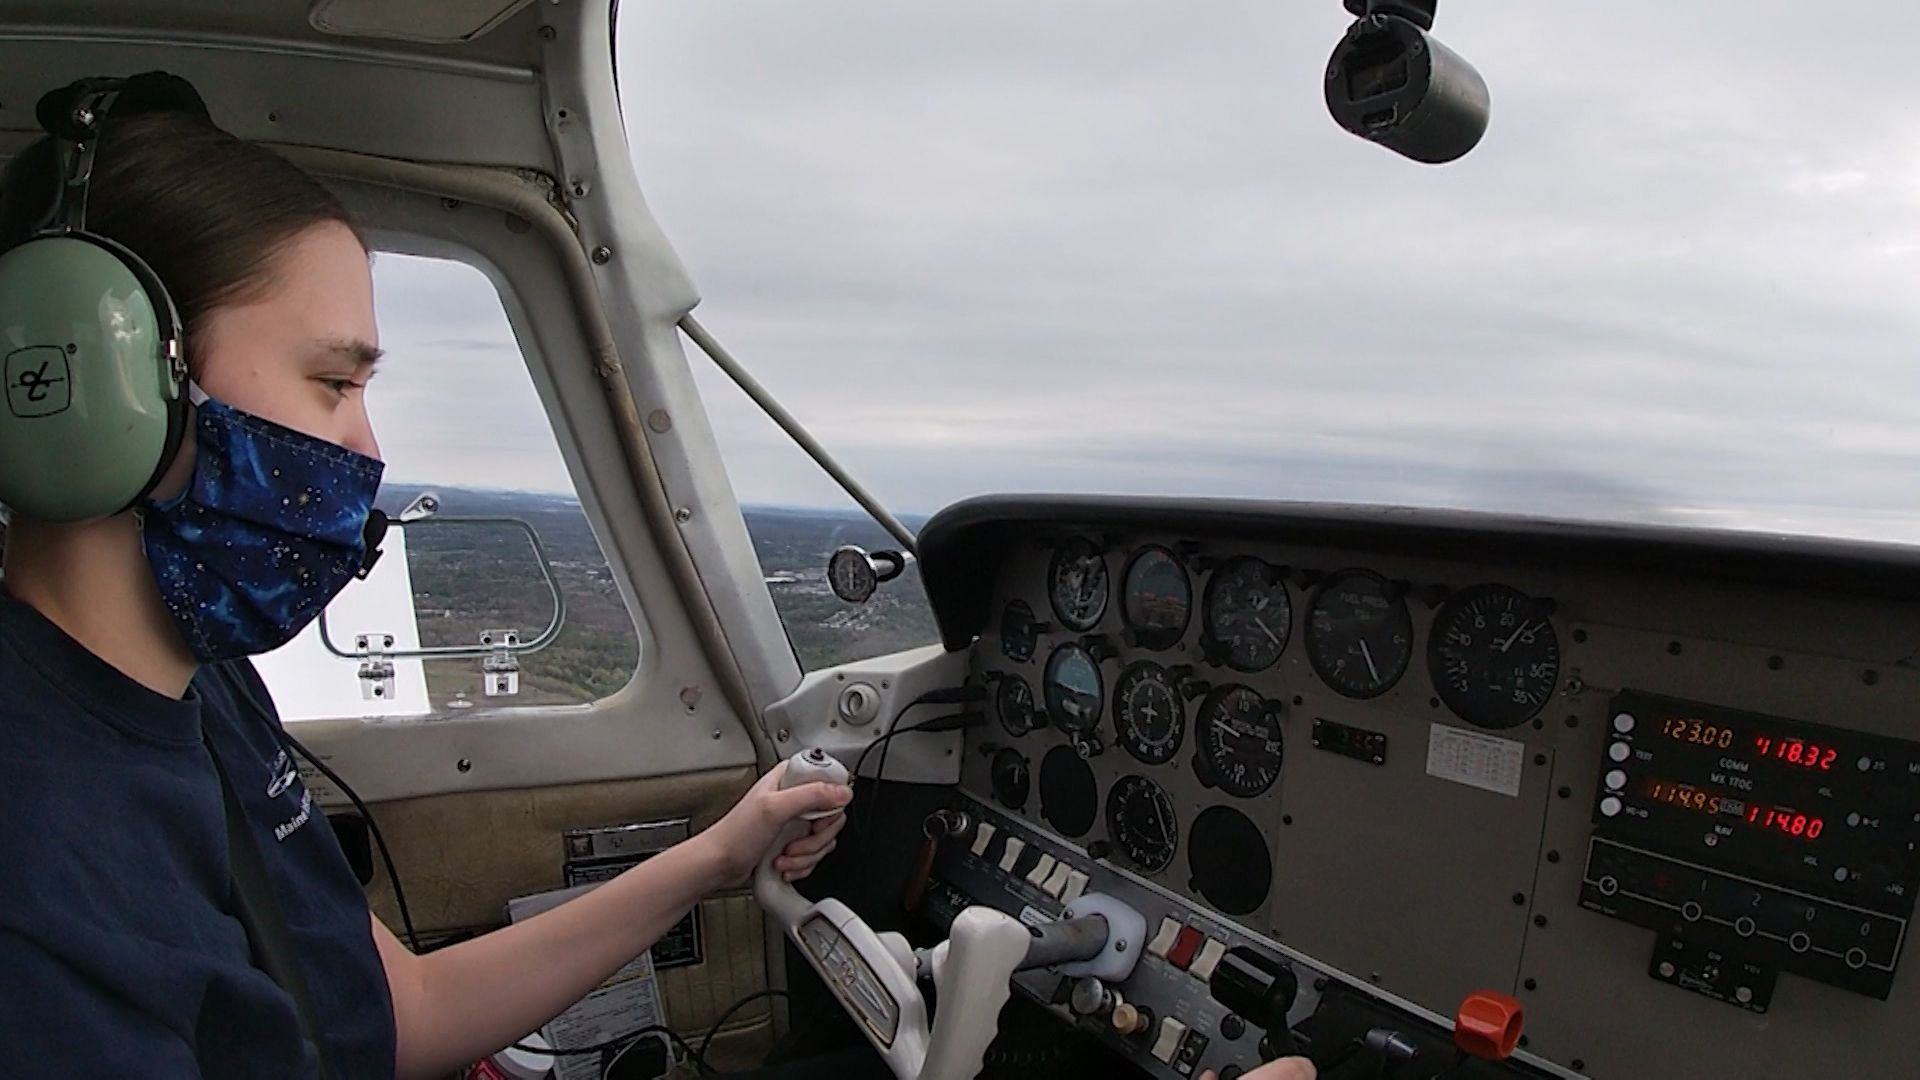 Type 1 diabetes nearly grounds Maine teen's dream of becoming a pilot